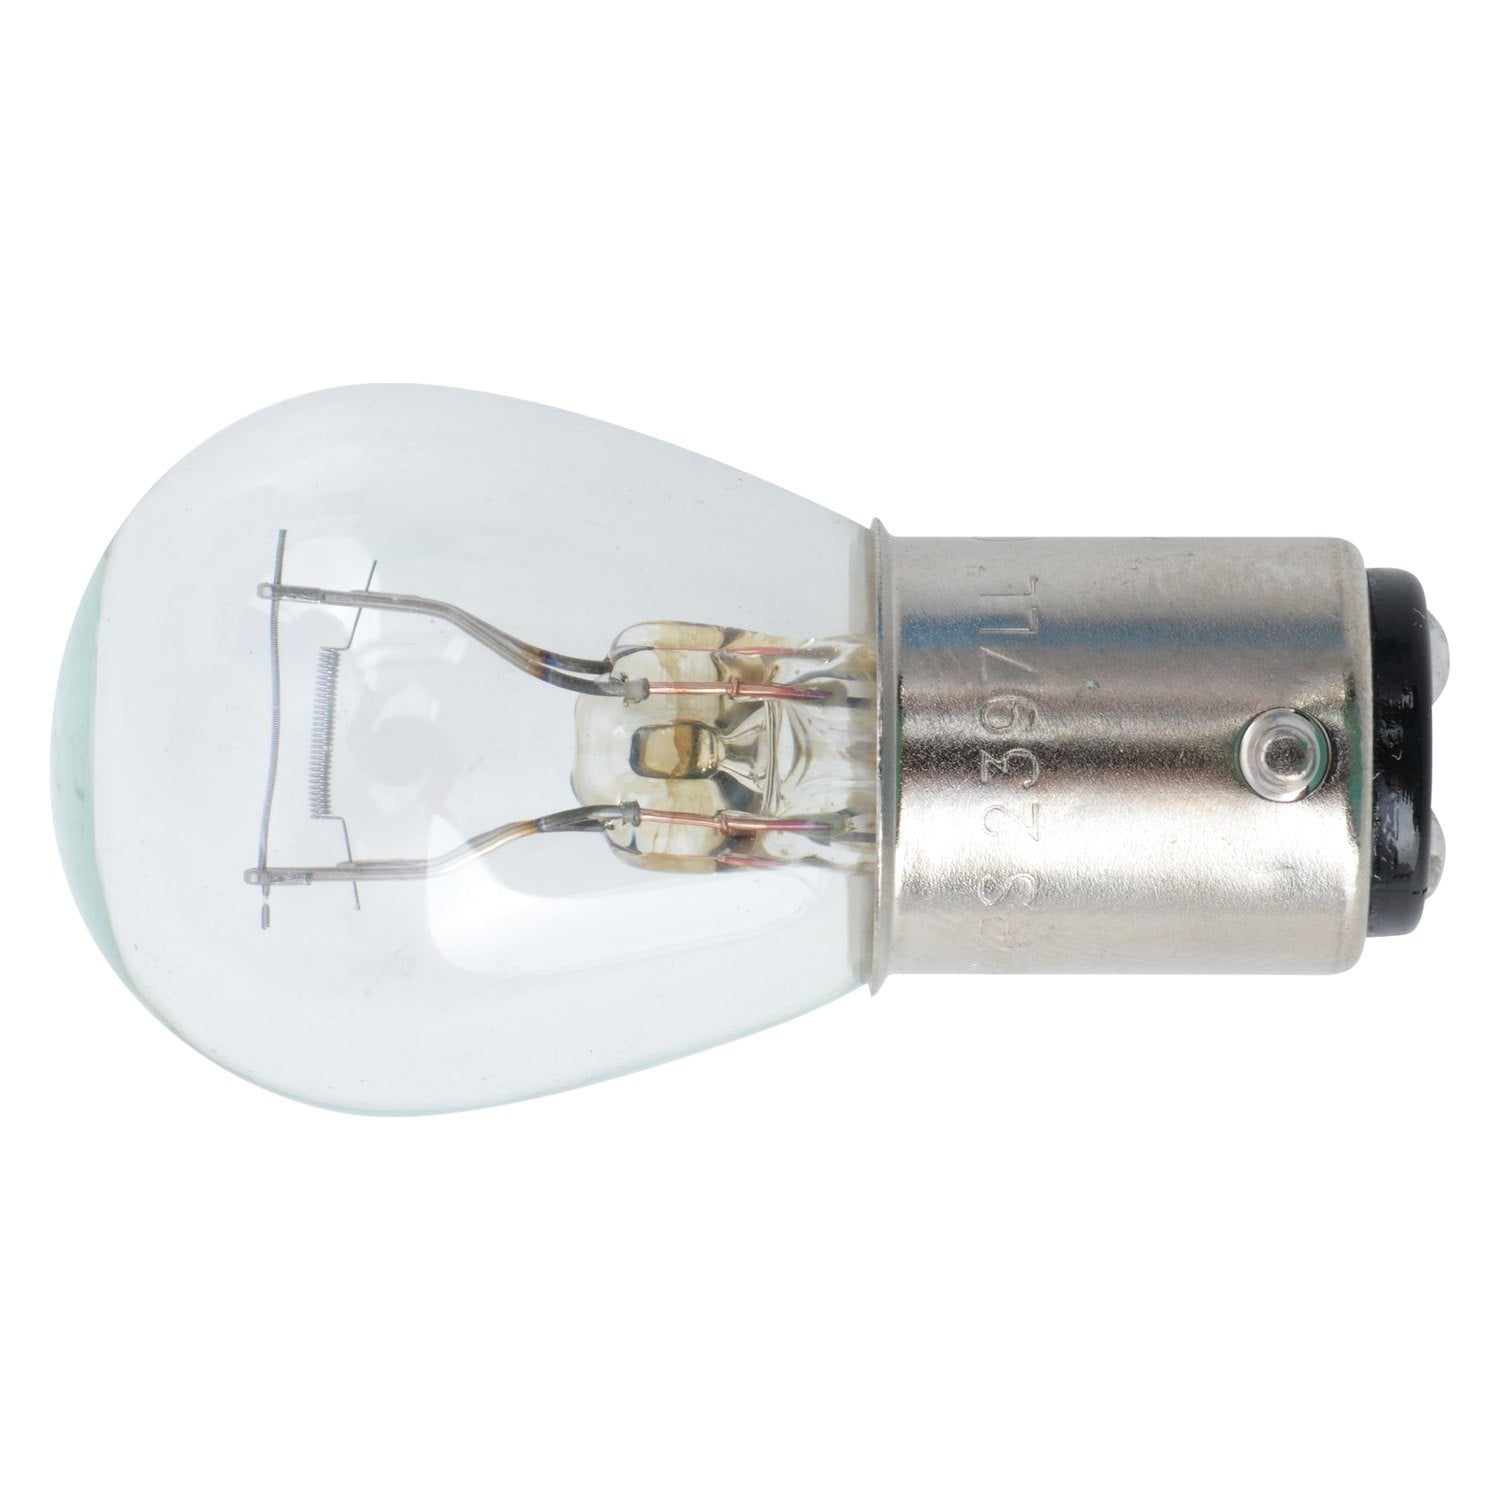 Philips 2397 - 12.8/14V 28.54/6.72W S8 Automotive Lamp - 2 Bulbs